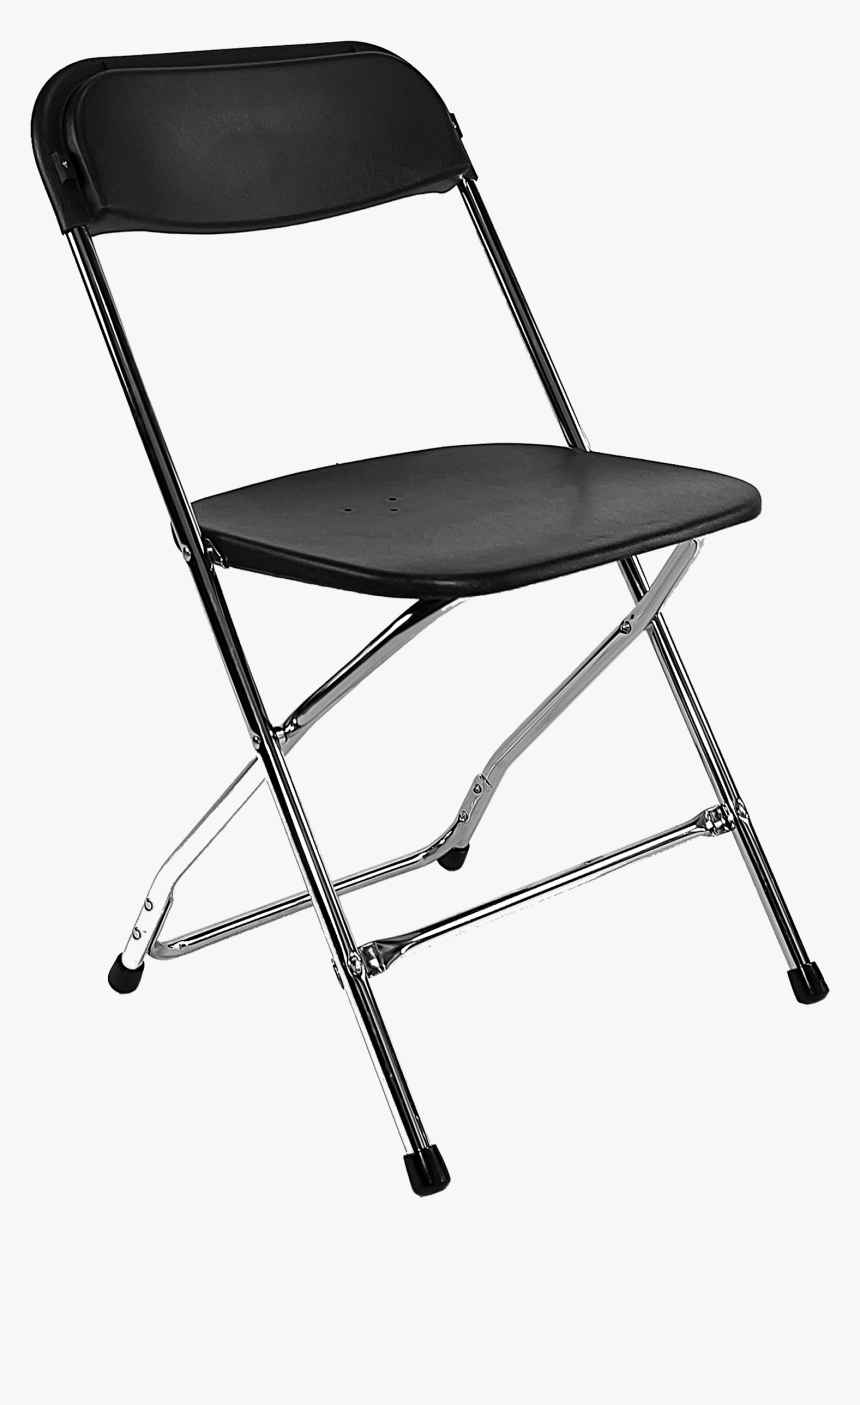 Grey Plastic Folding Chair, HD Png Download, Free Download